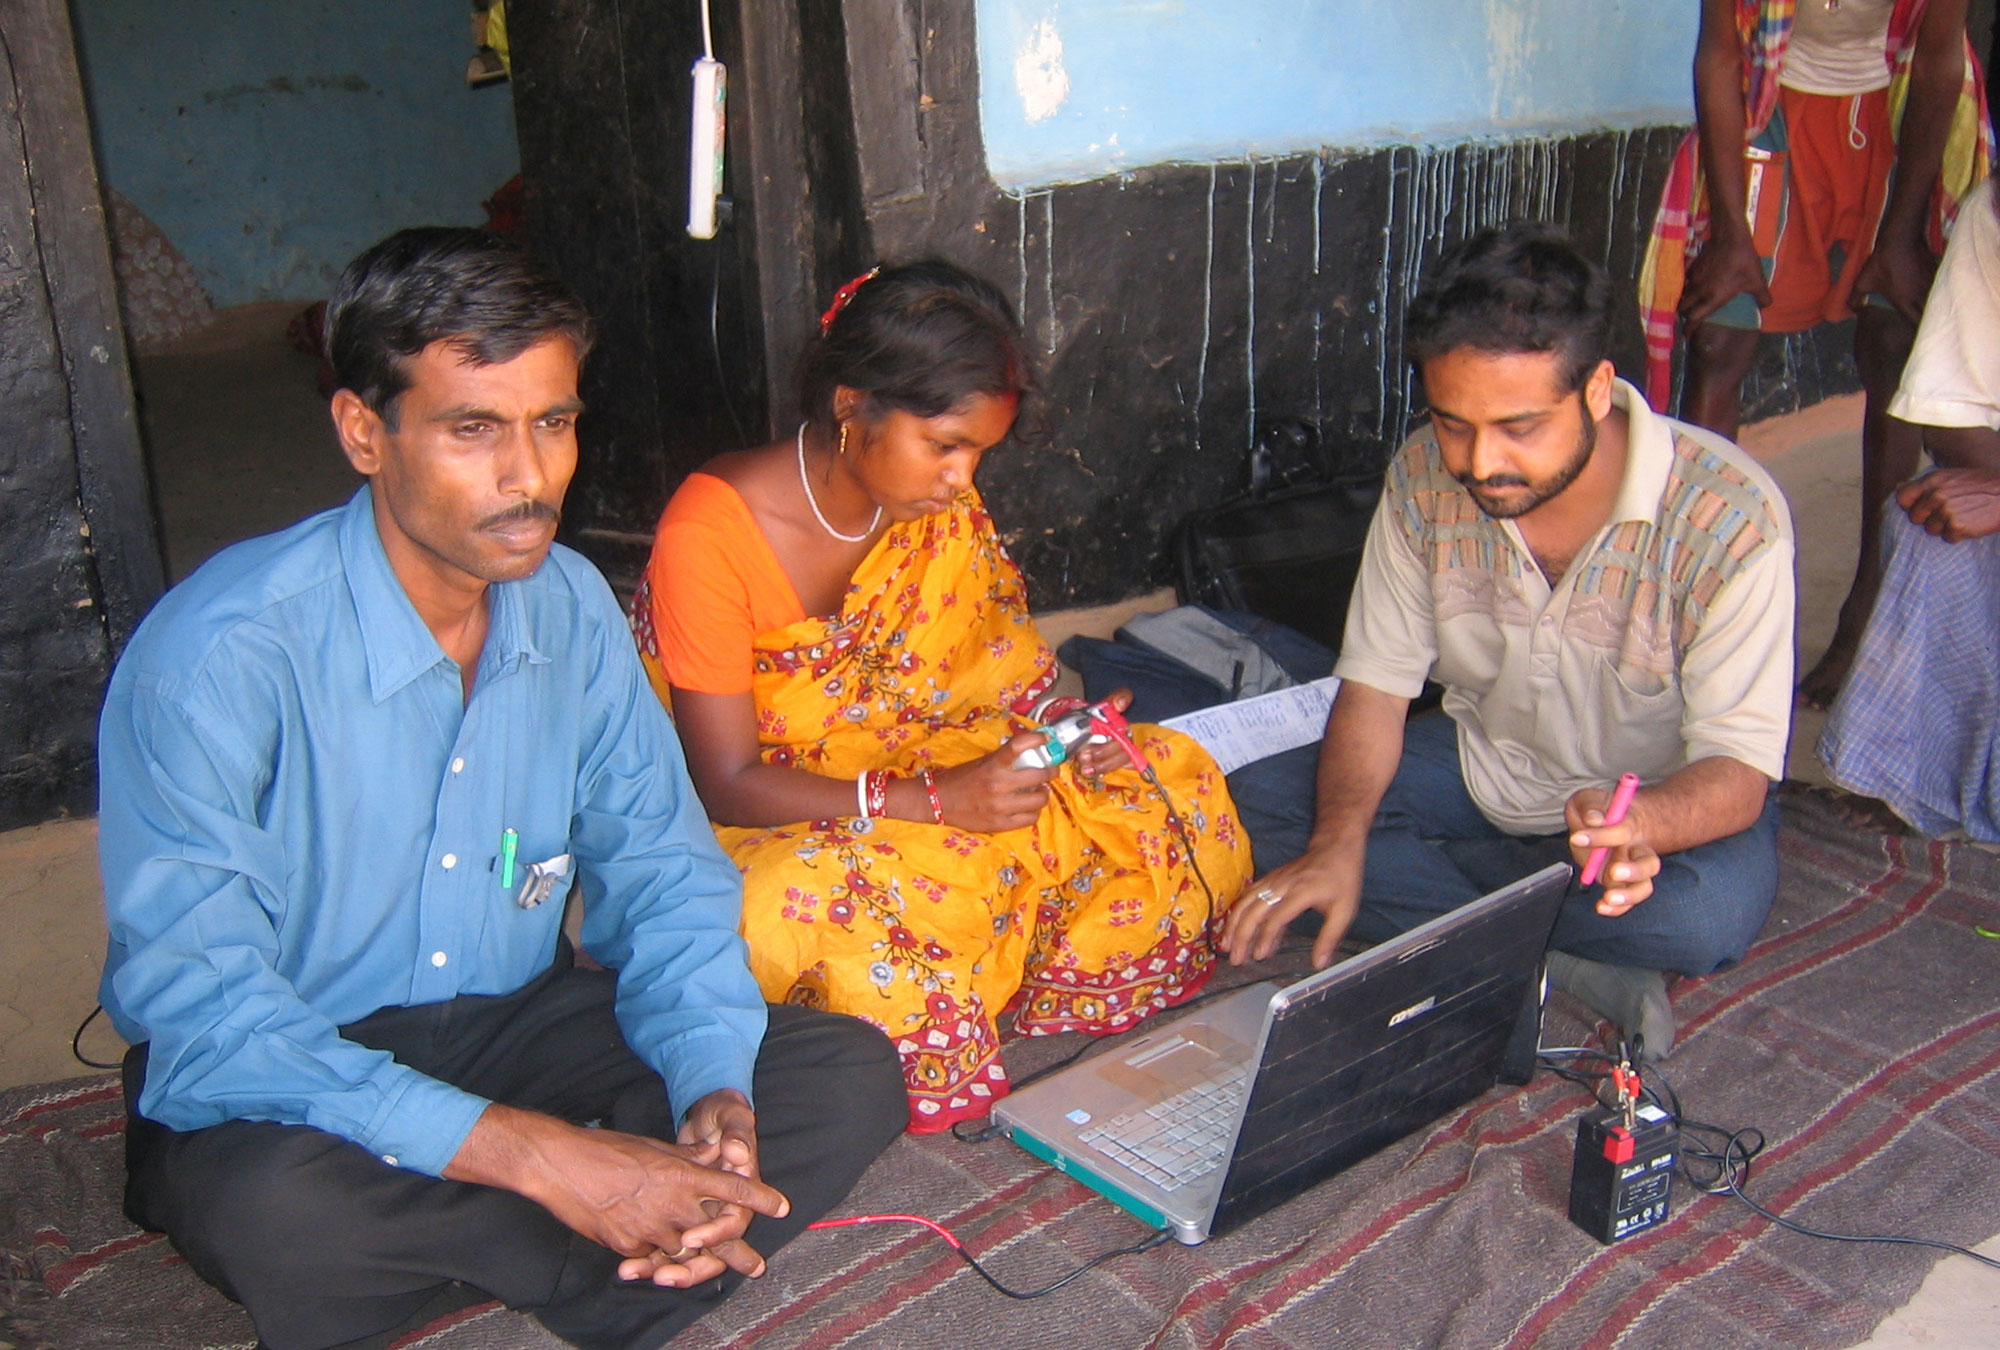 Woman on computer in Rajasthan, India